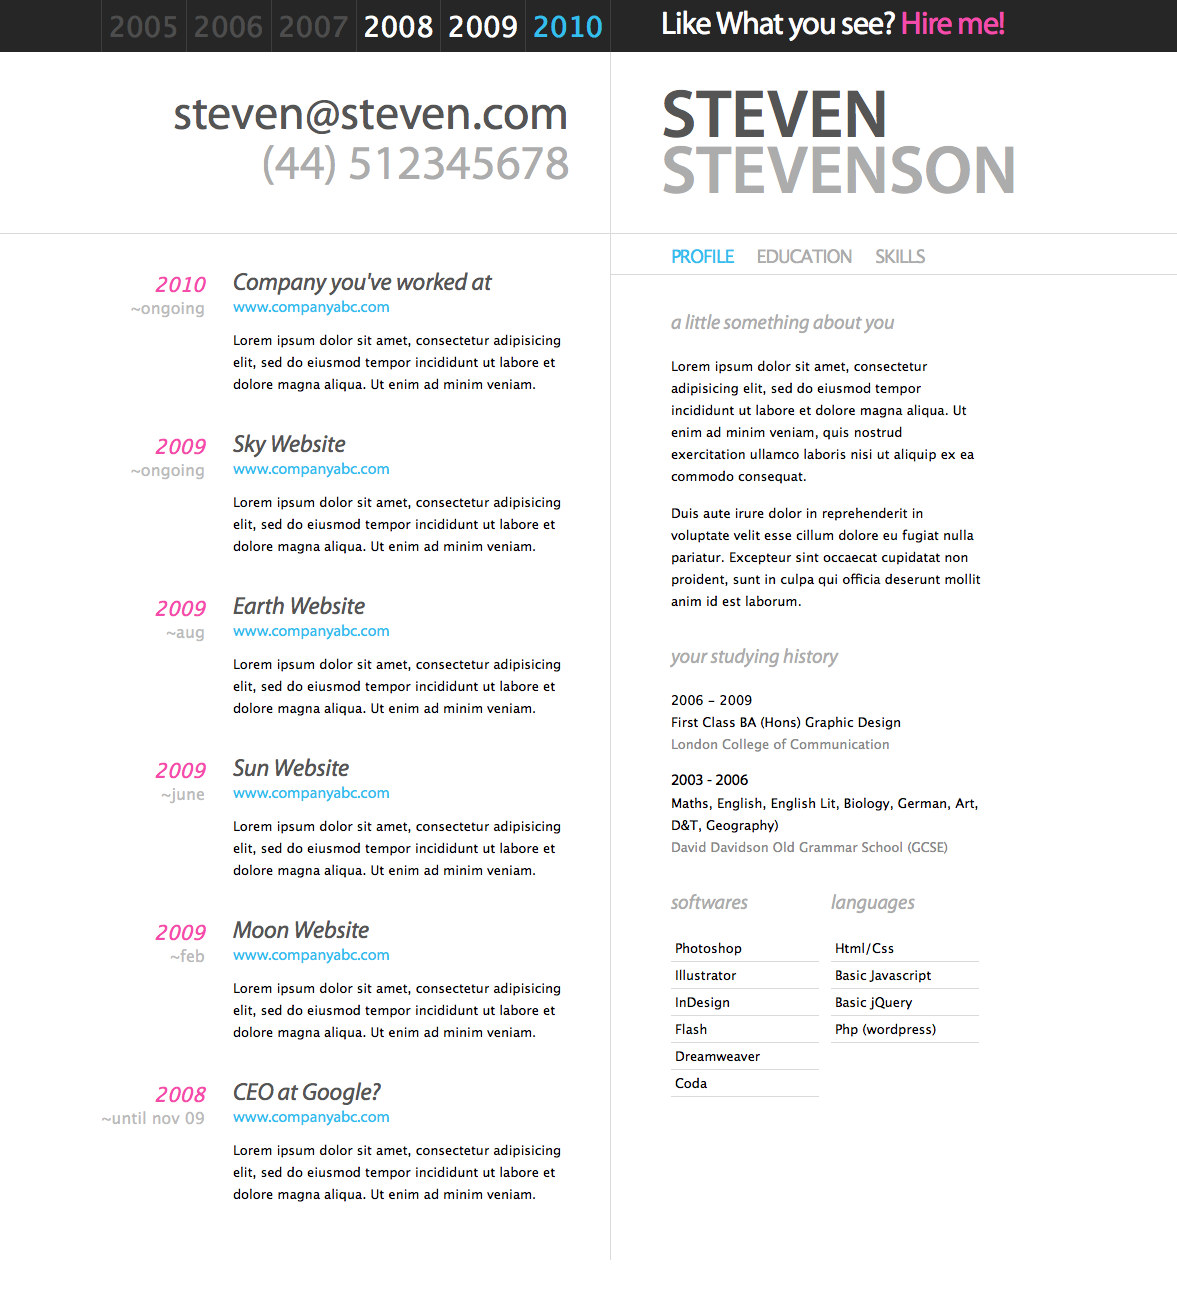 Examples of Beautiful Resume/CV Web Templates - Tuts+ Code Article